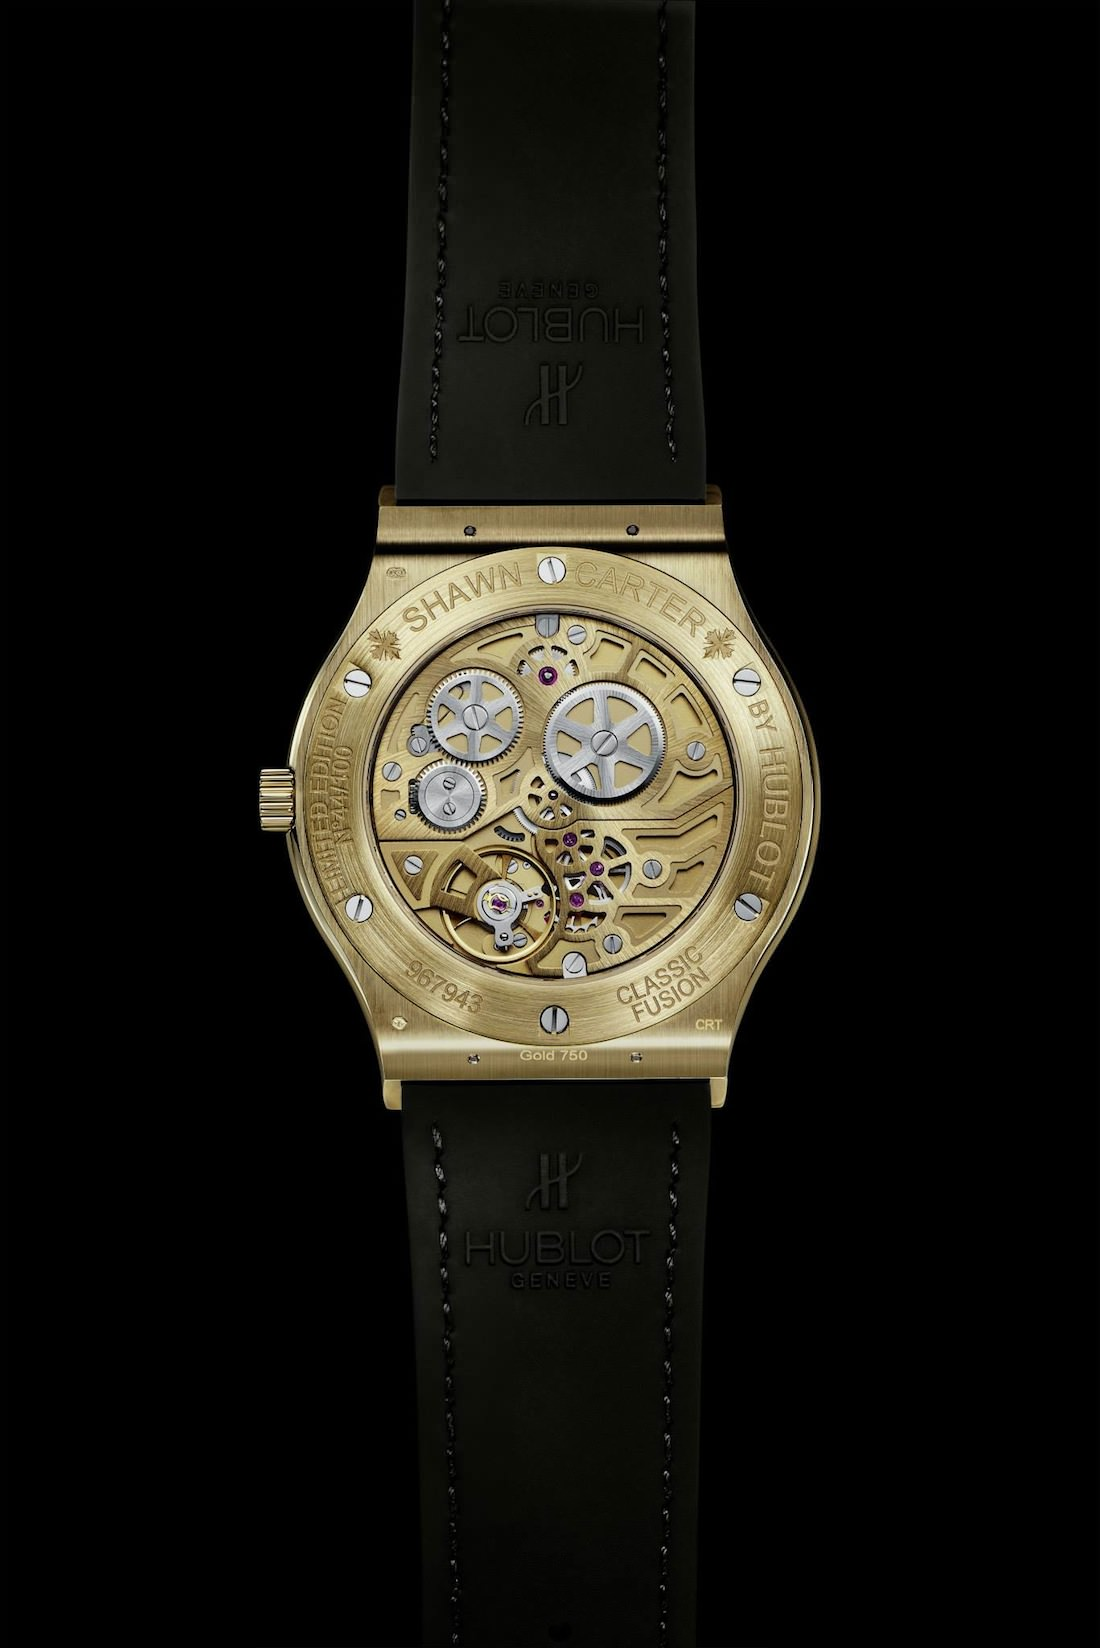 Hublot-Shawn-Carter-jayz-11